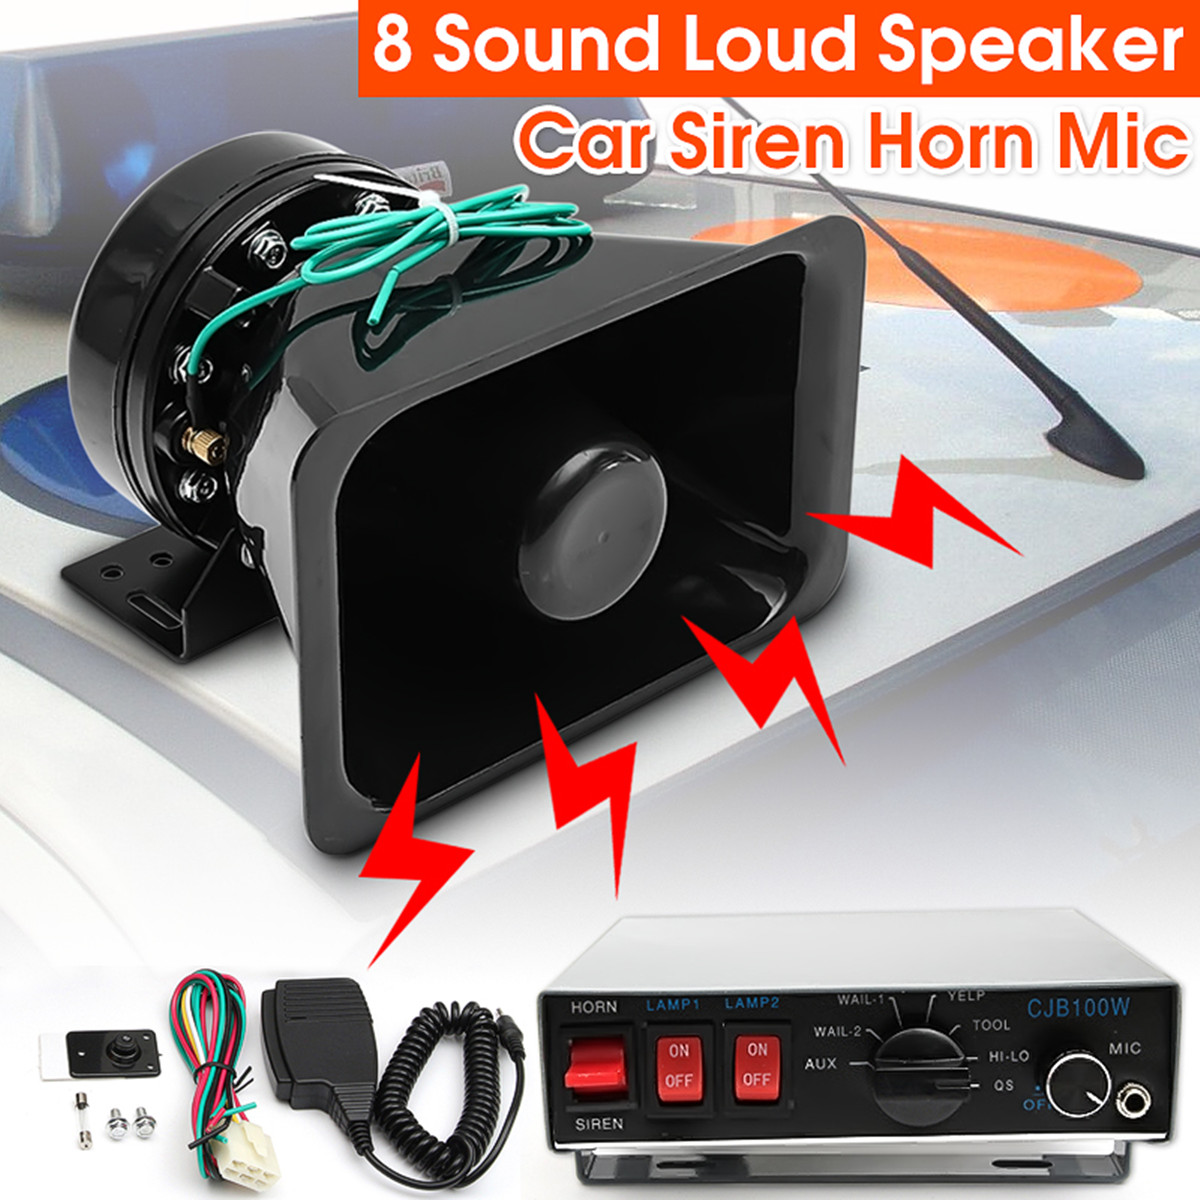 12V 100W 8 Sound Tones 130dB Loud Car Warning Alarm for Fire Siren Horn Speaker with Black Wireless Remote Controller digitalboy car motorcycle dc 12v 100w loud air horn 125db siren sound speaker megaphone alarm for ambulance truck boat 6 tones